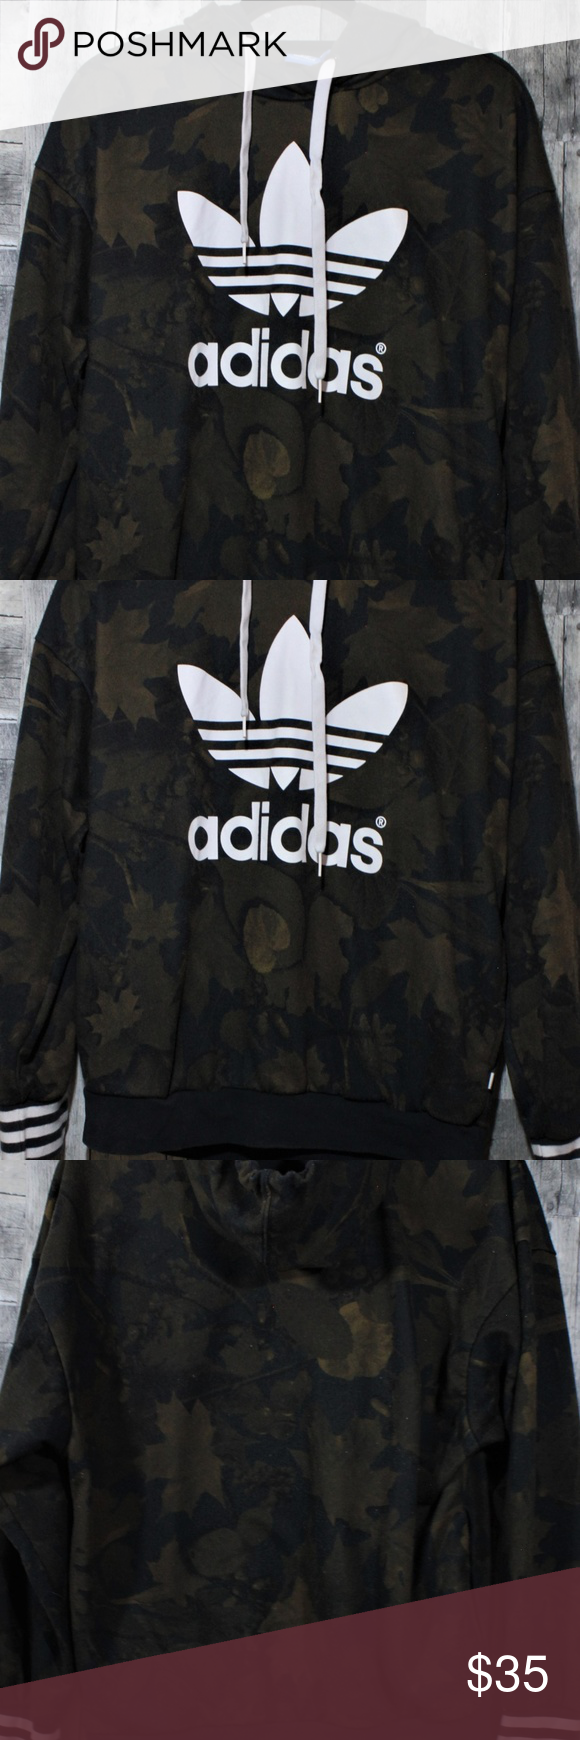 Women S Adidas Camo Hoodie Used Once Washed Once Still Looks New Size Us 10 Or Small In Women S Not A Crop Hoodie Ad Adidas Women Camo Hoodie Adidas Camo [ 1740 x 580 Pixel ]